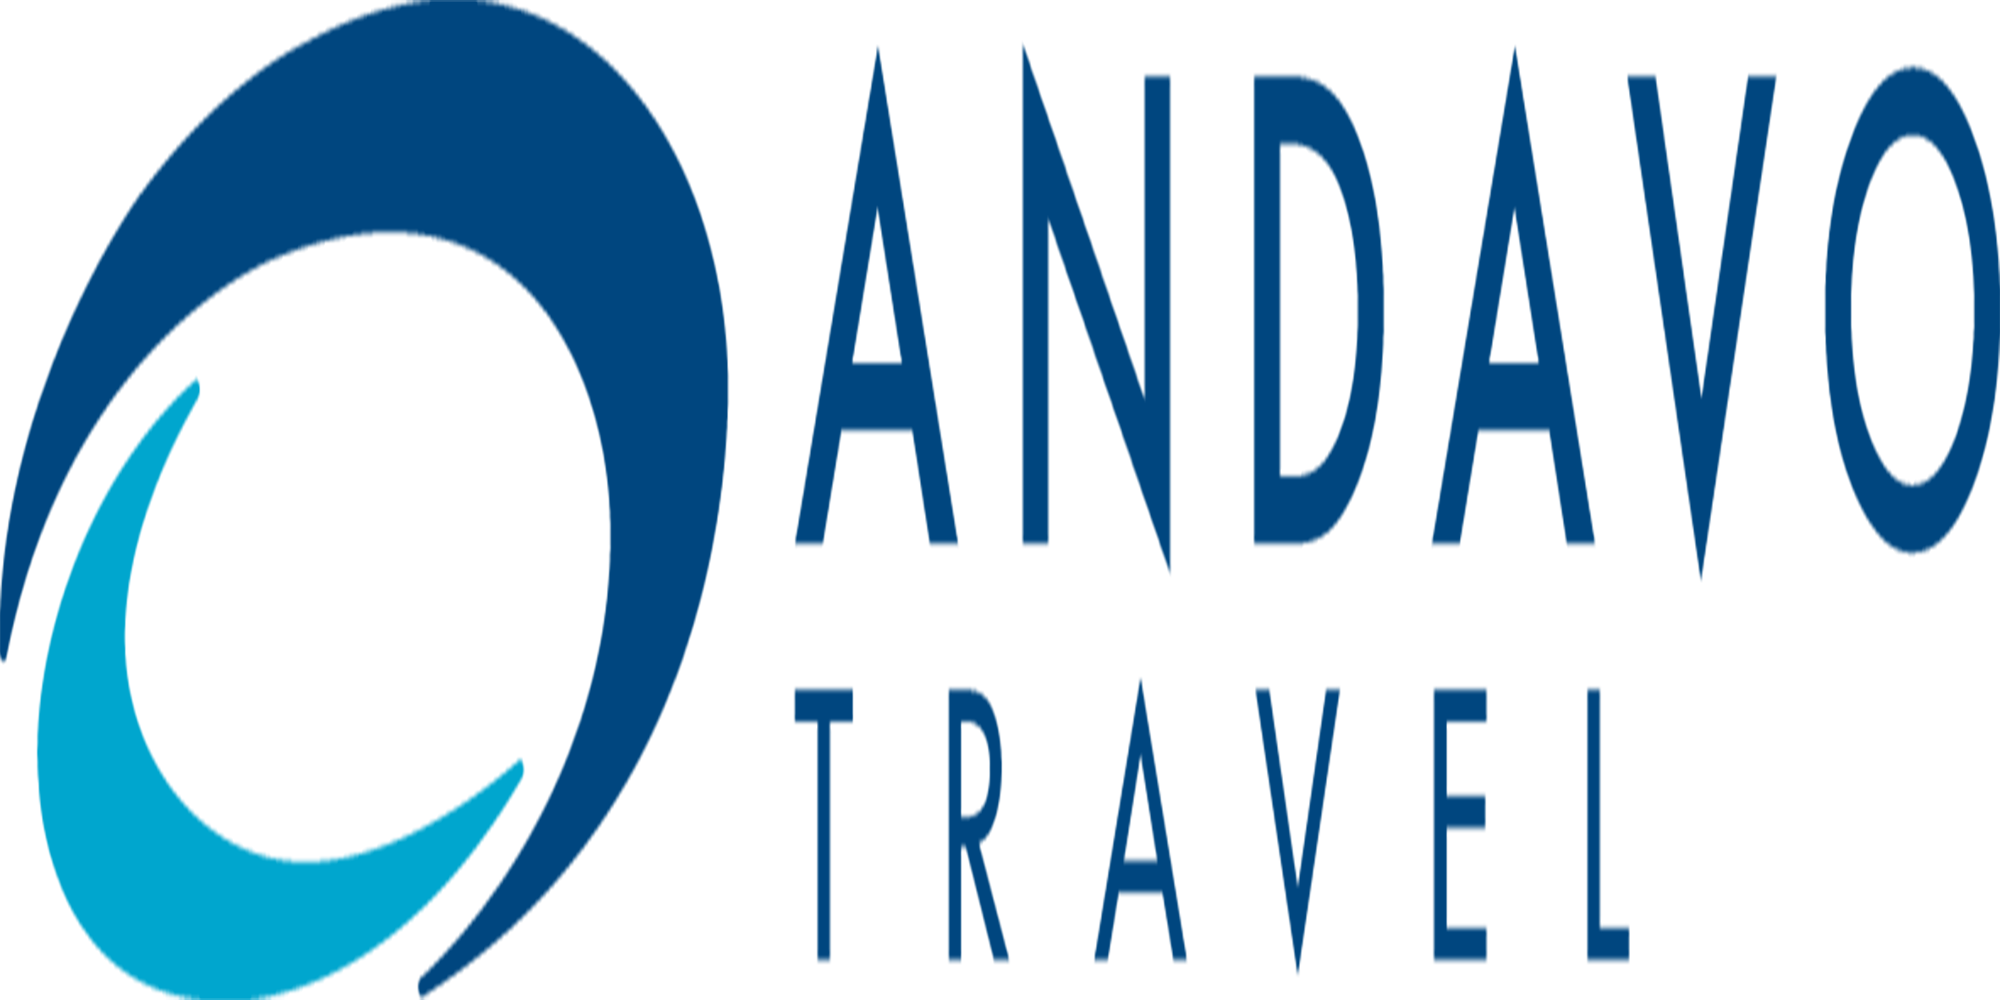 AndavoConnections